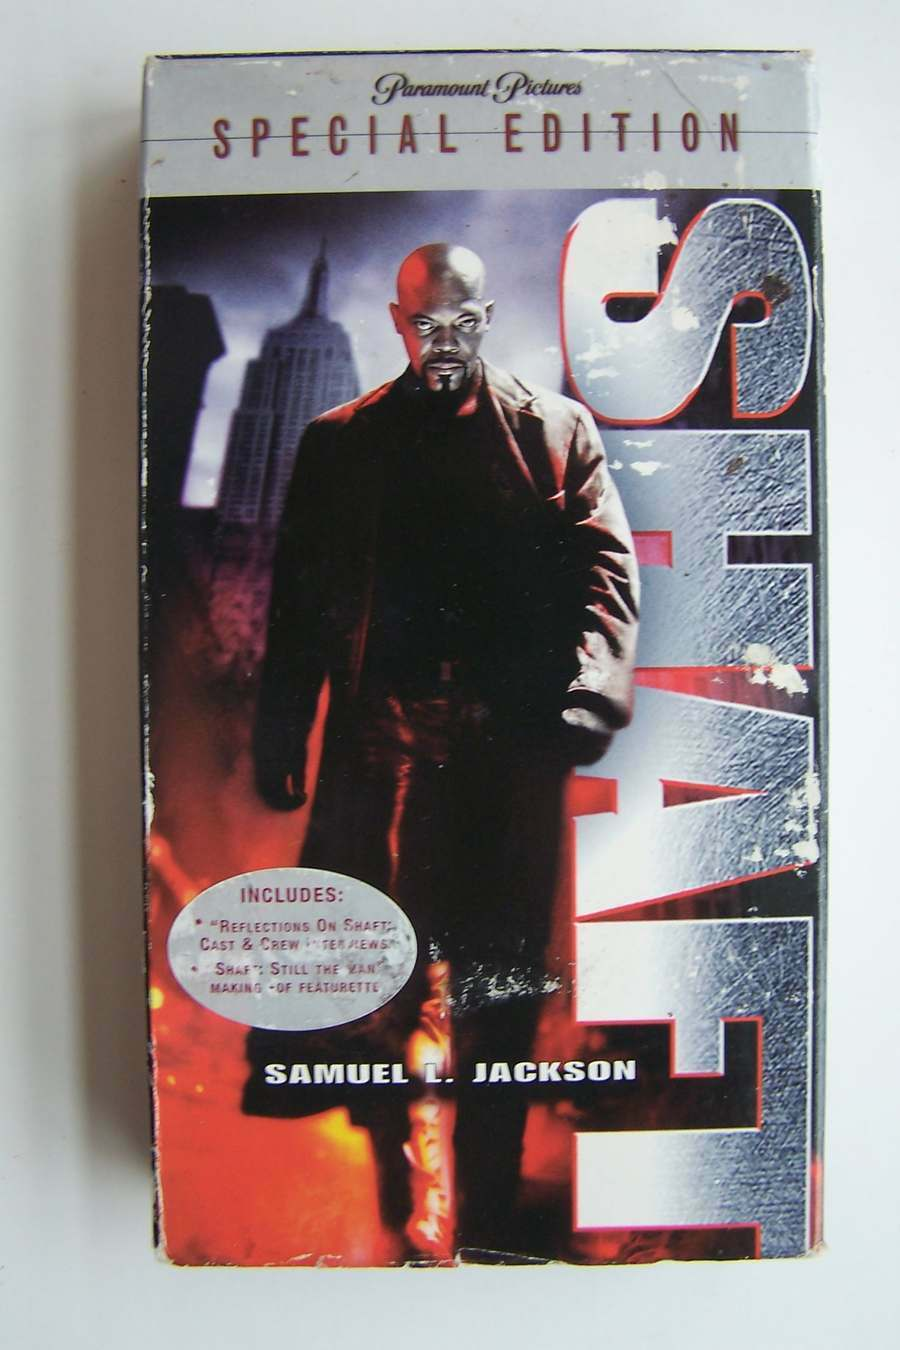 Shaft (Special Edition) VHS Video Tape 2000